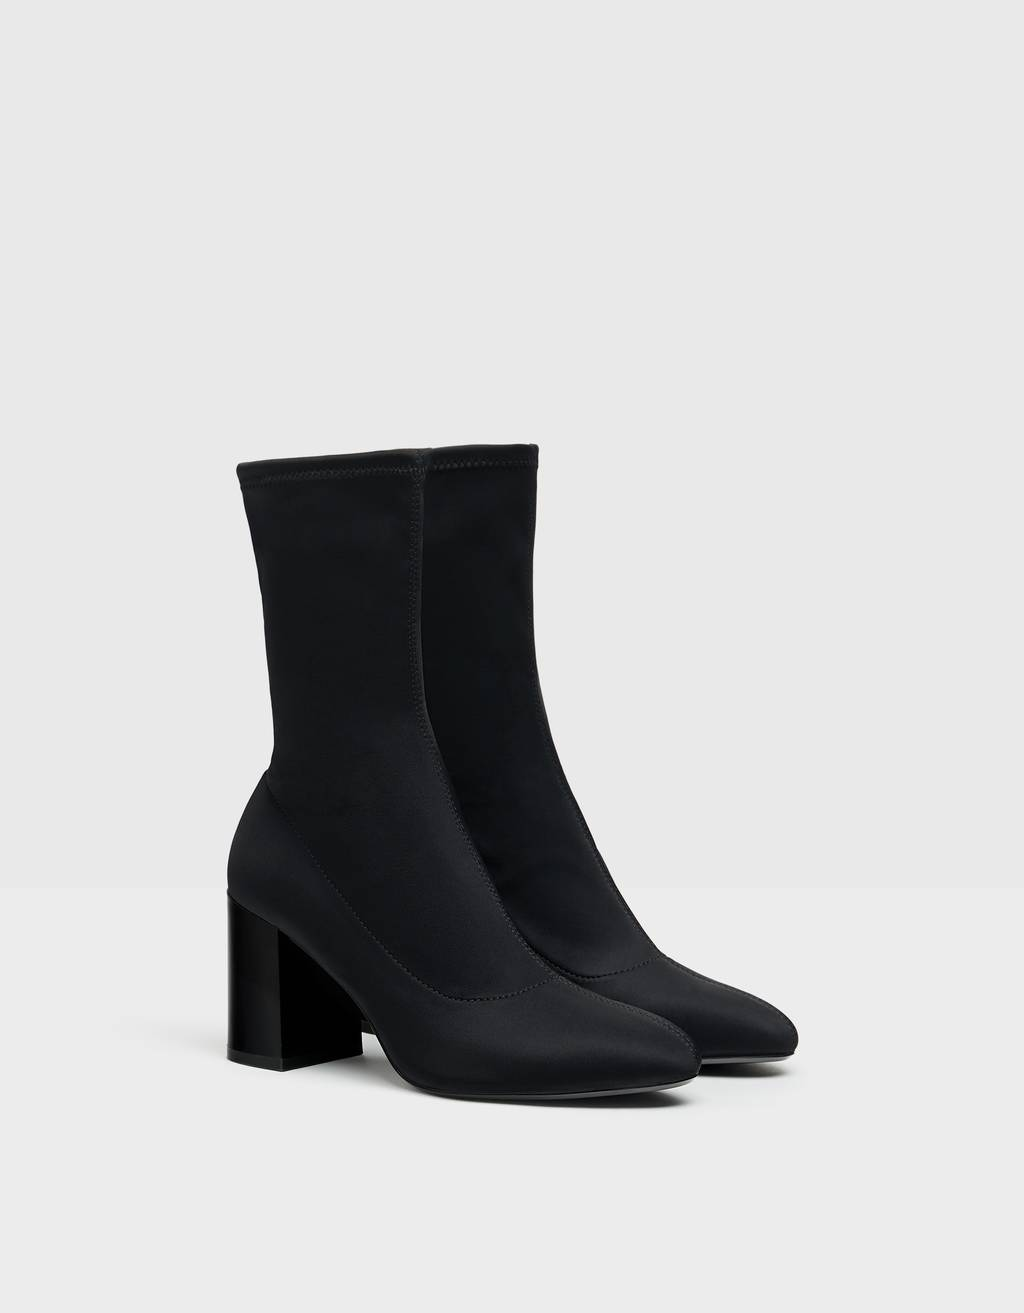 Stretchy high-heel ankle boots.